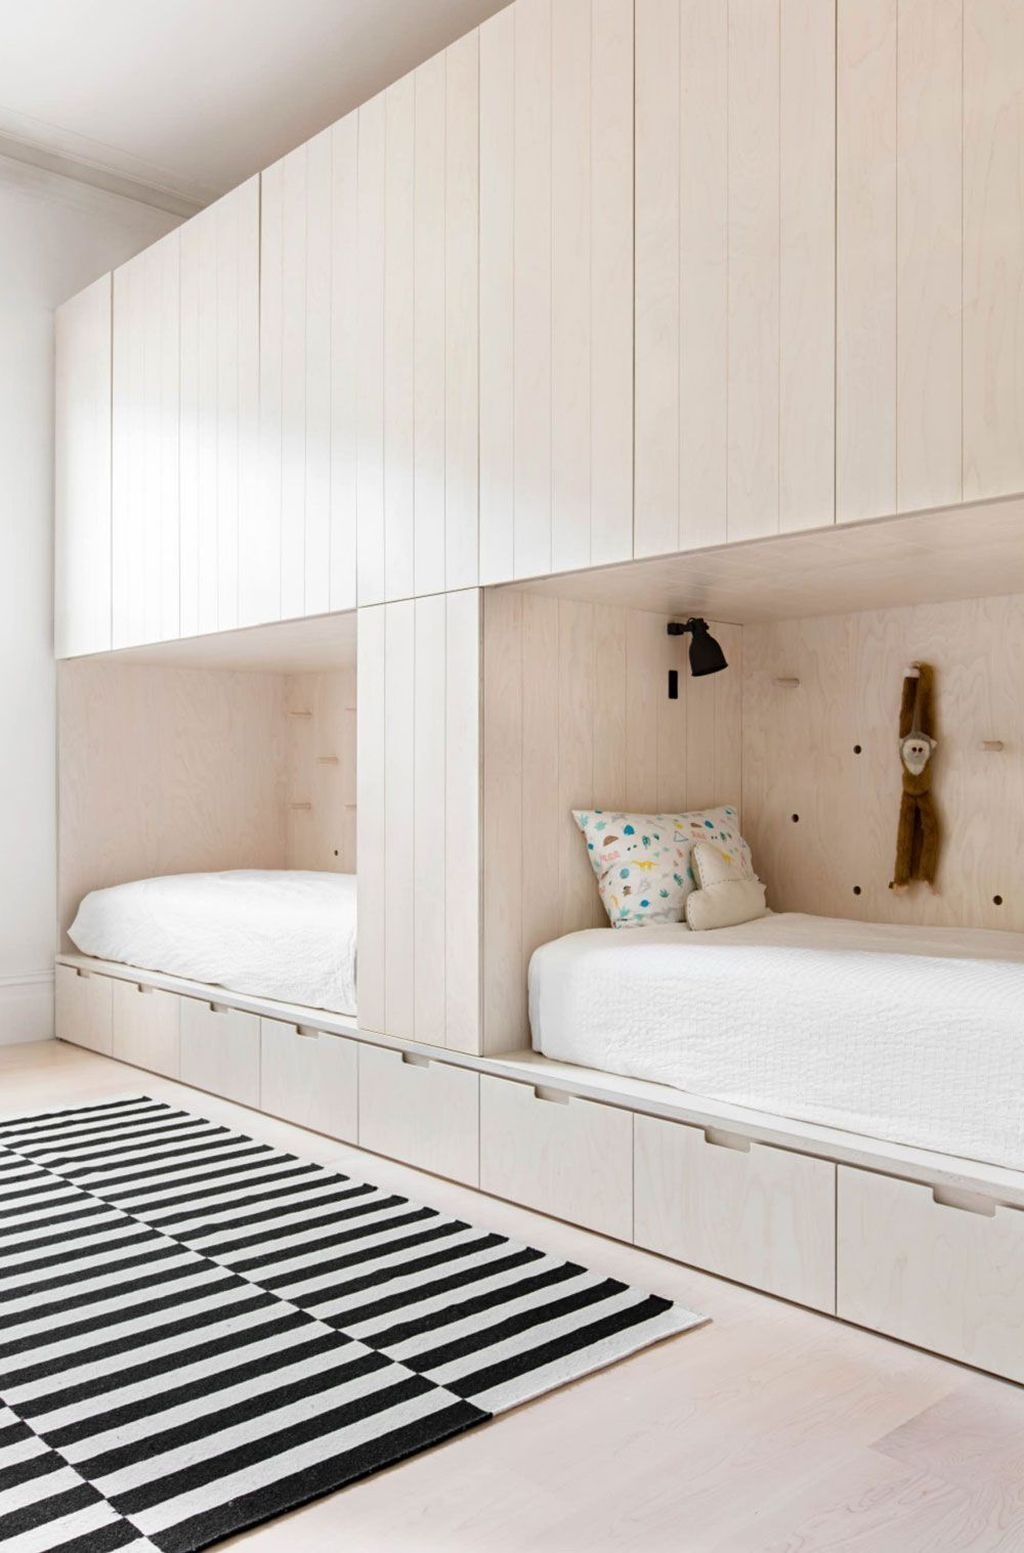 Marvelous Bedroom Cabinet Design Ideas For Your Home Inspiration 31